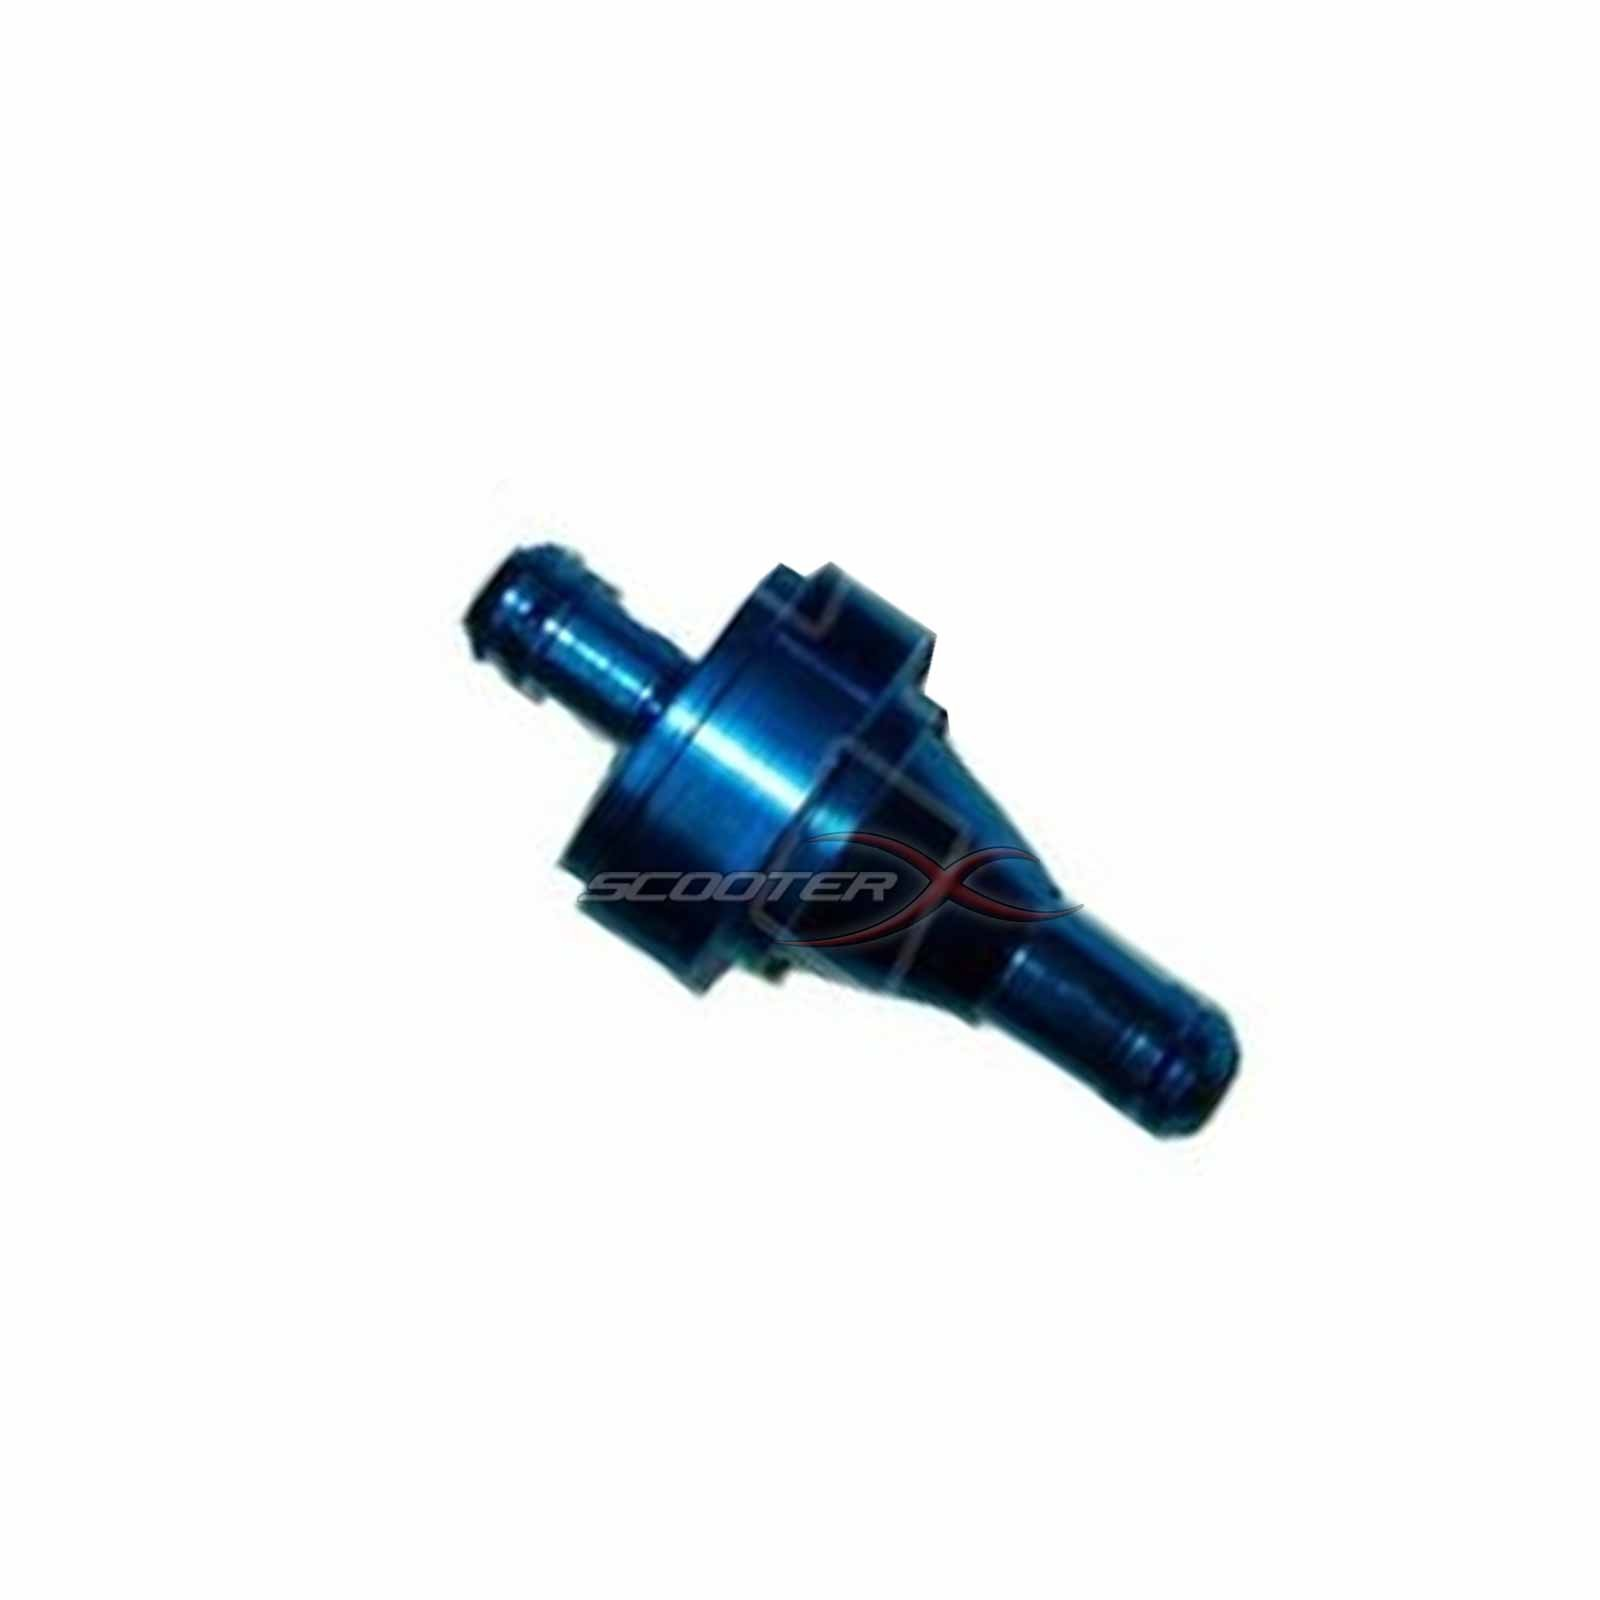 Universal In Line Aluminum Fuel Filter For Scooters Motorcycles Atv Filters 1 4 Flanges Blue